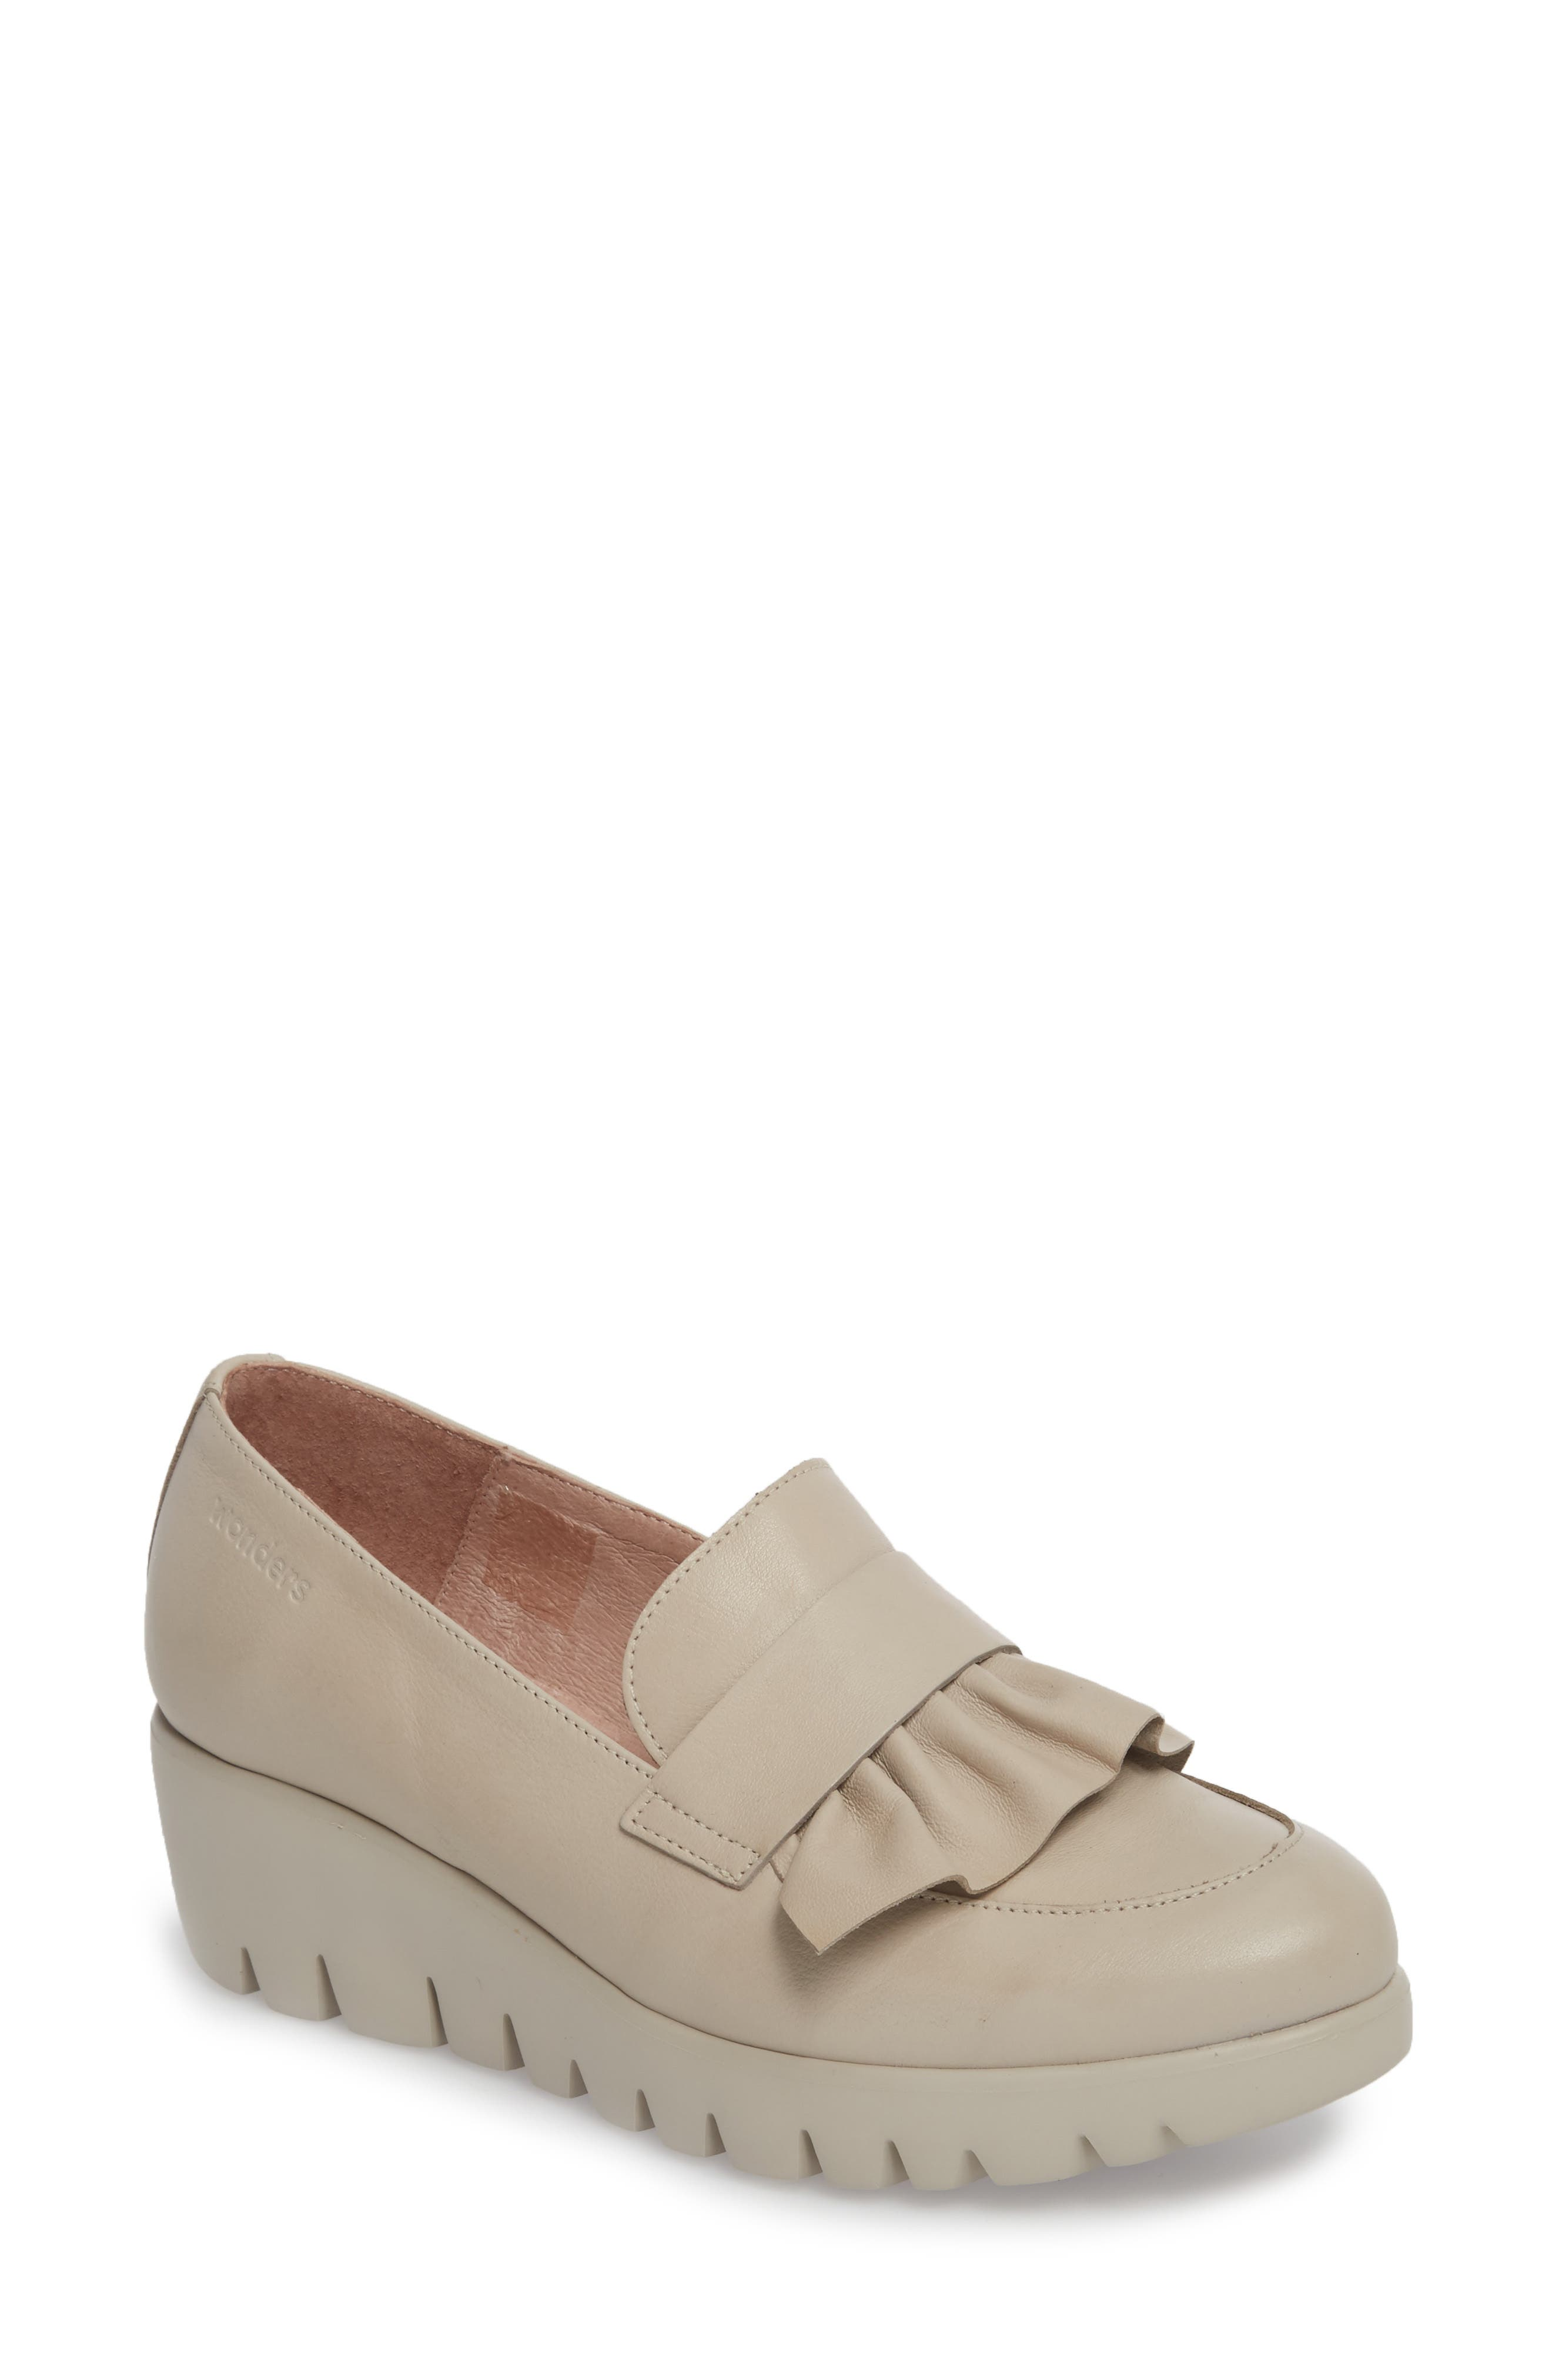 Wonders Loafer Wedge - Grey